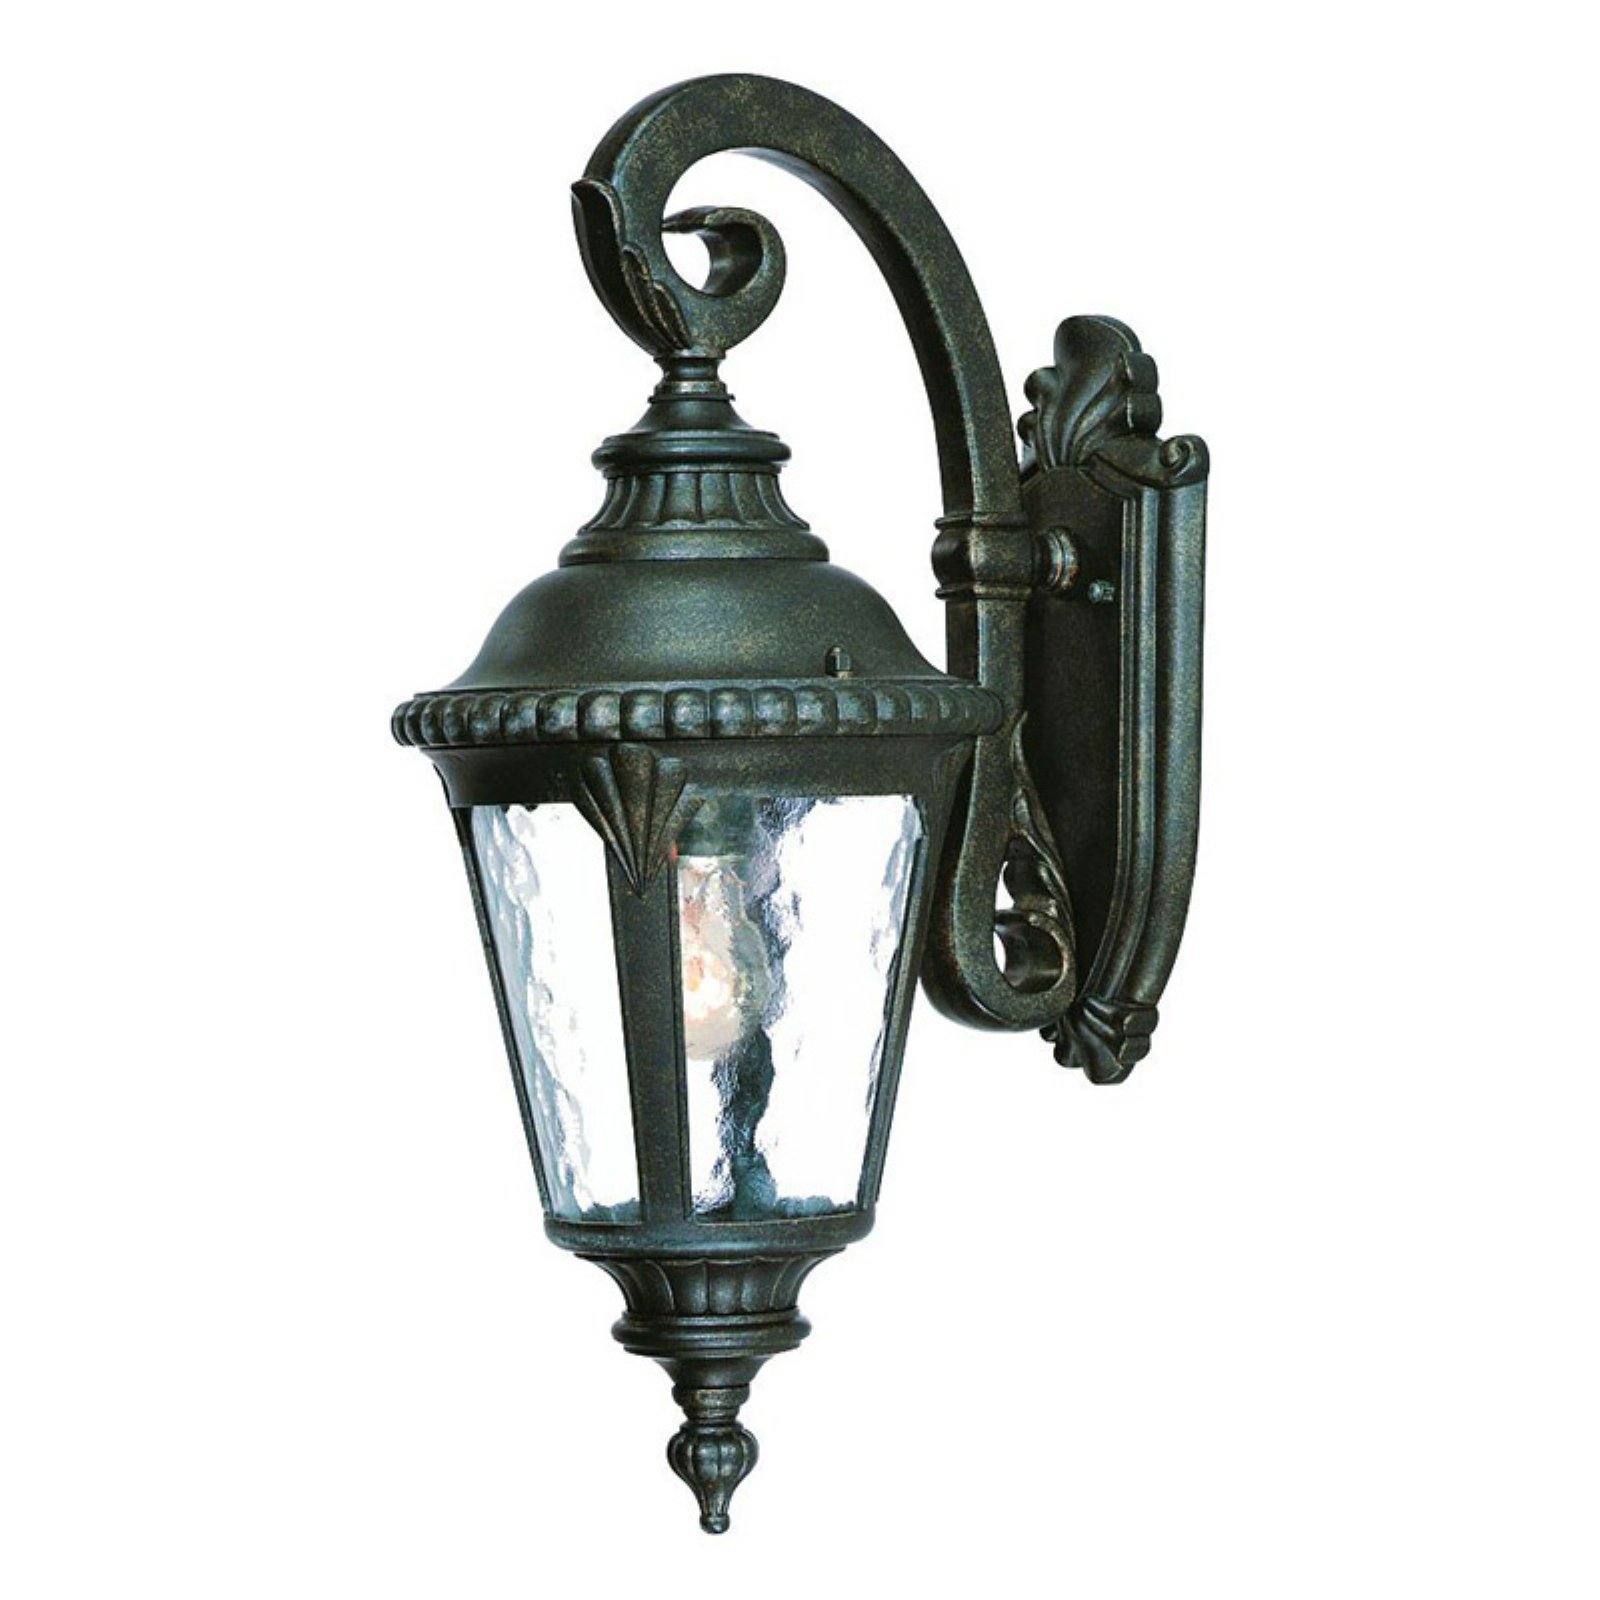 Acclaim Lighting Surrey 8 in. Outdoor Wall Mount Light Fixture